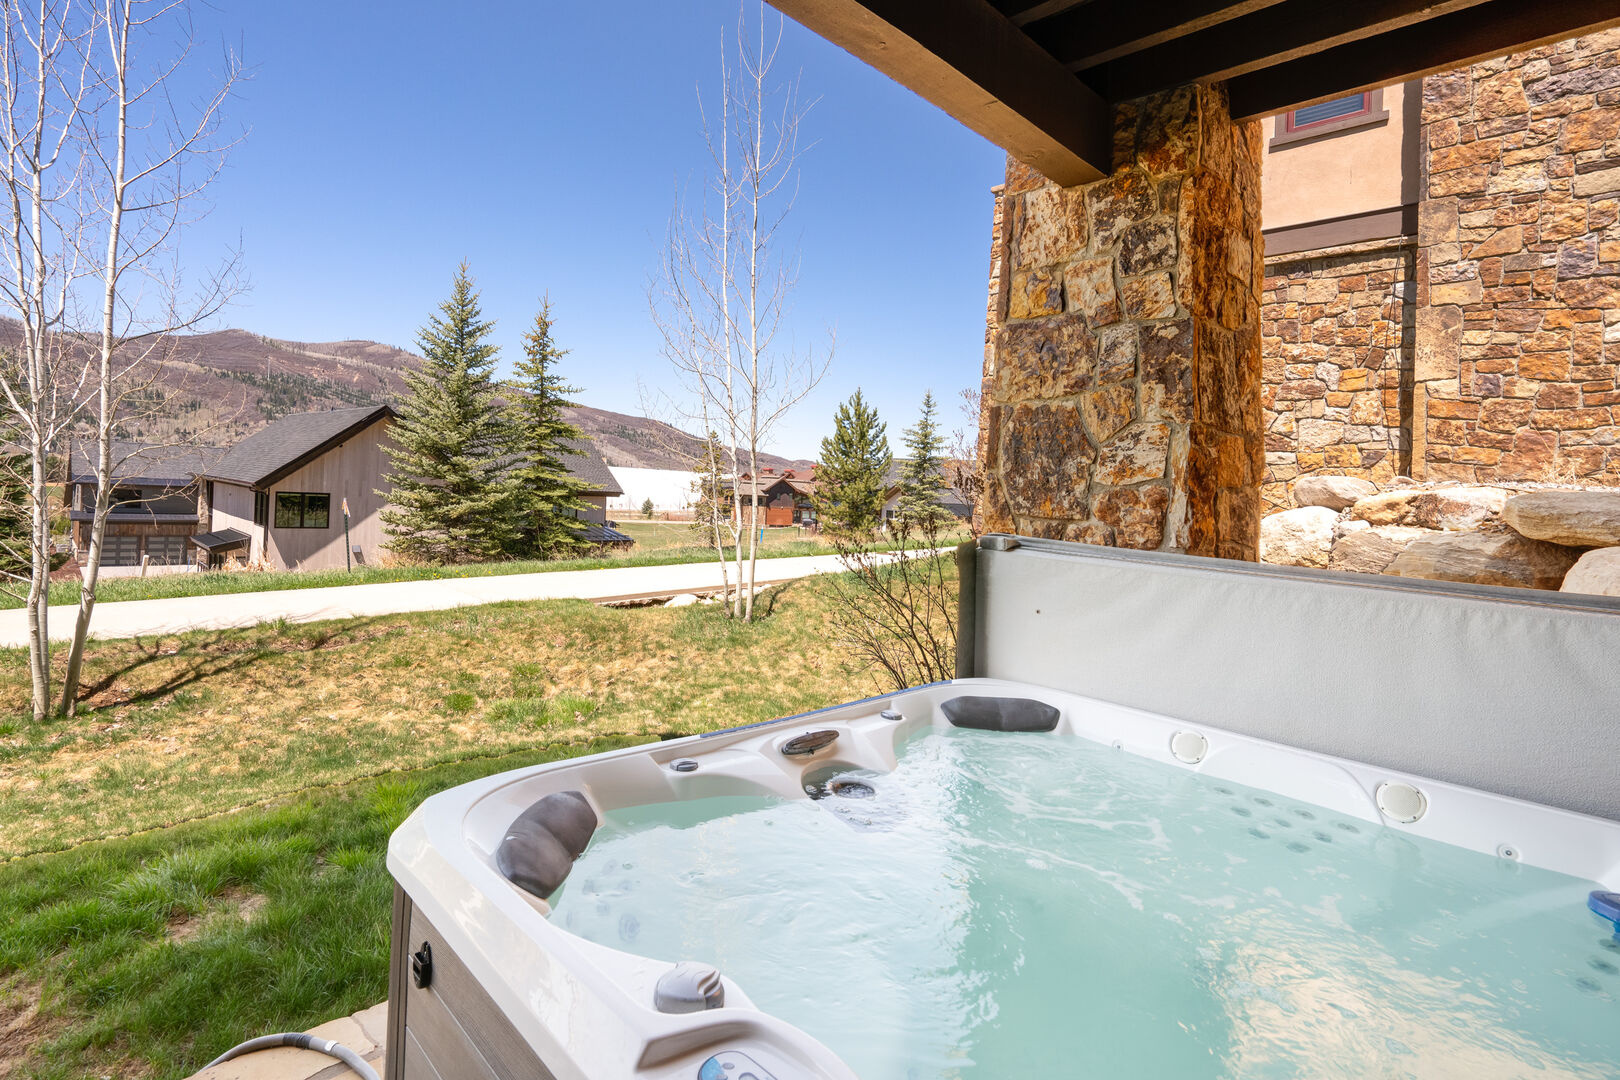 Views of Emerald Mountain from the hot tub.